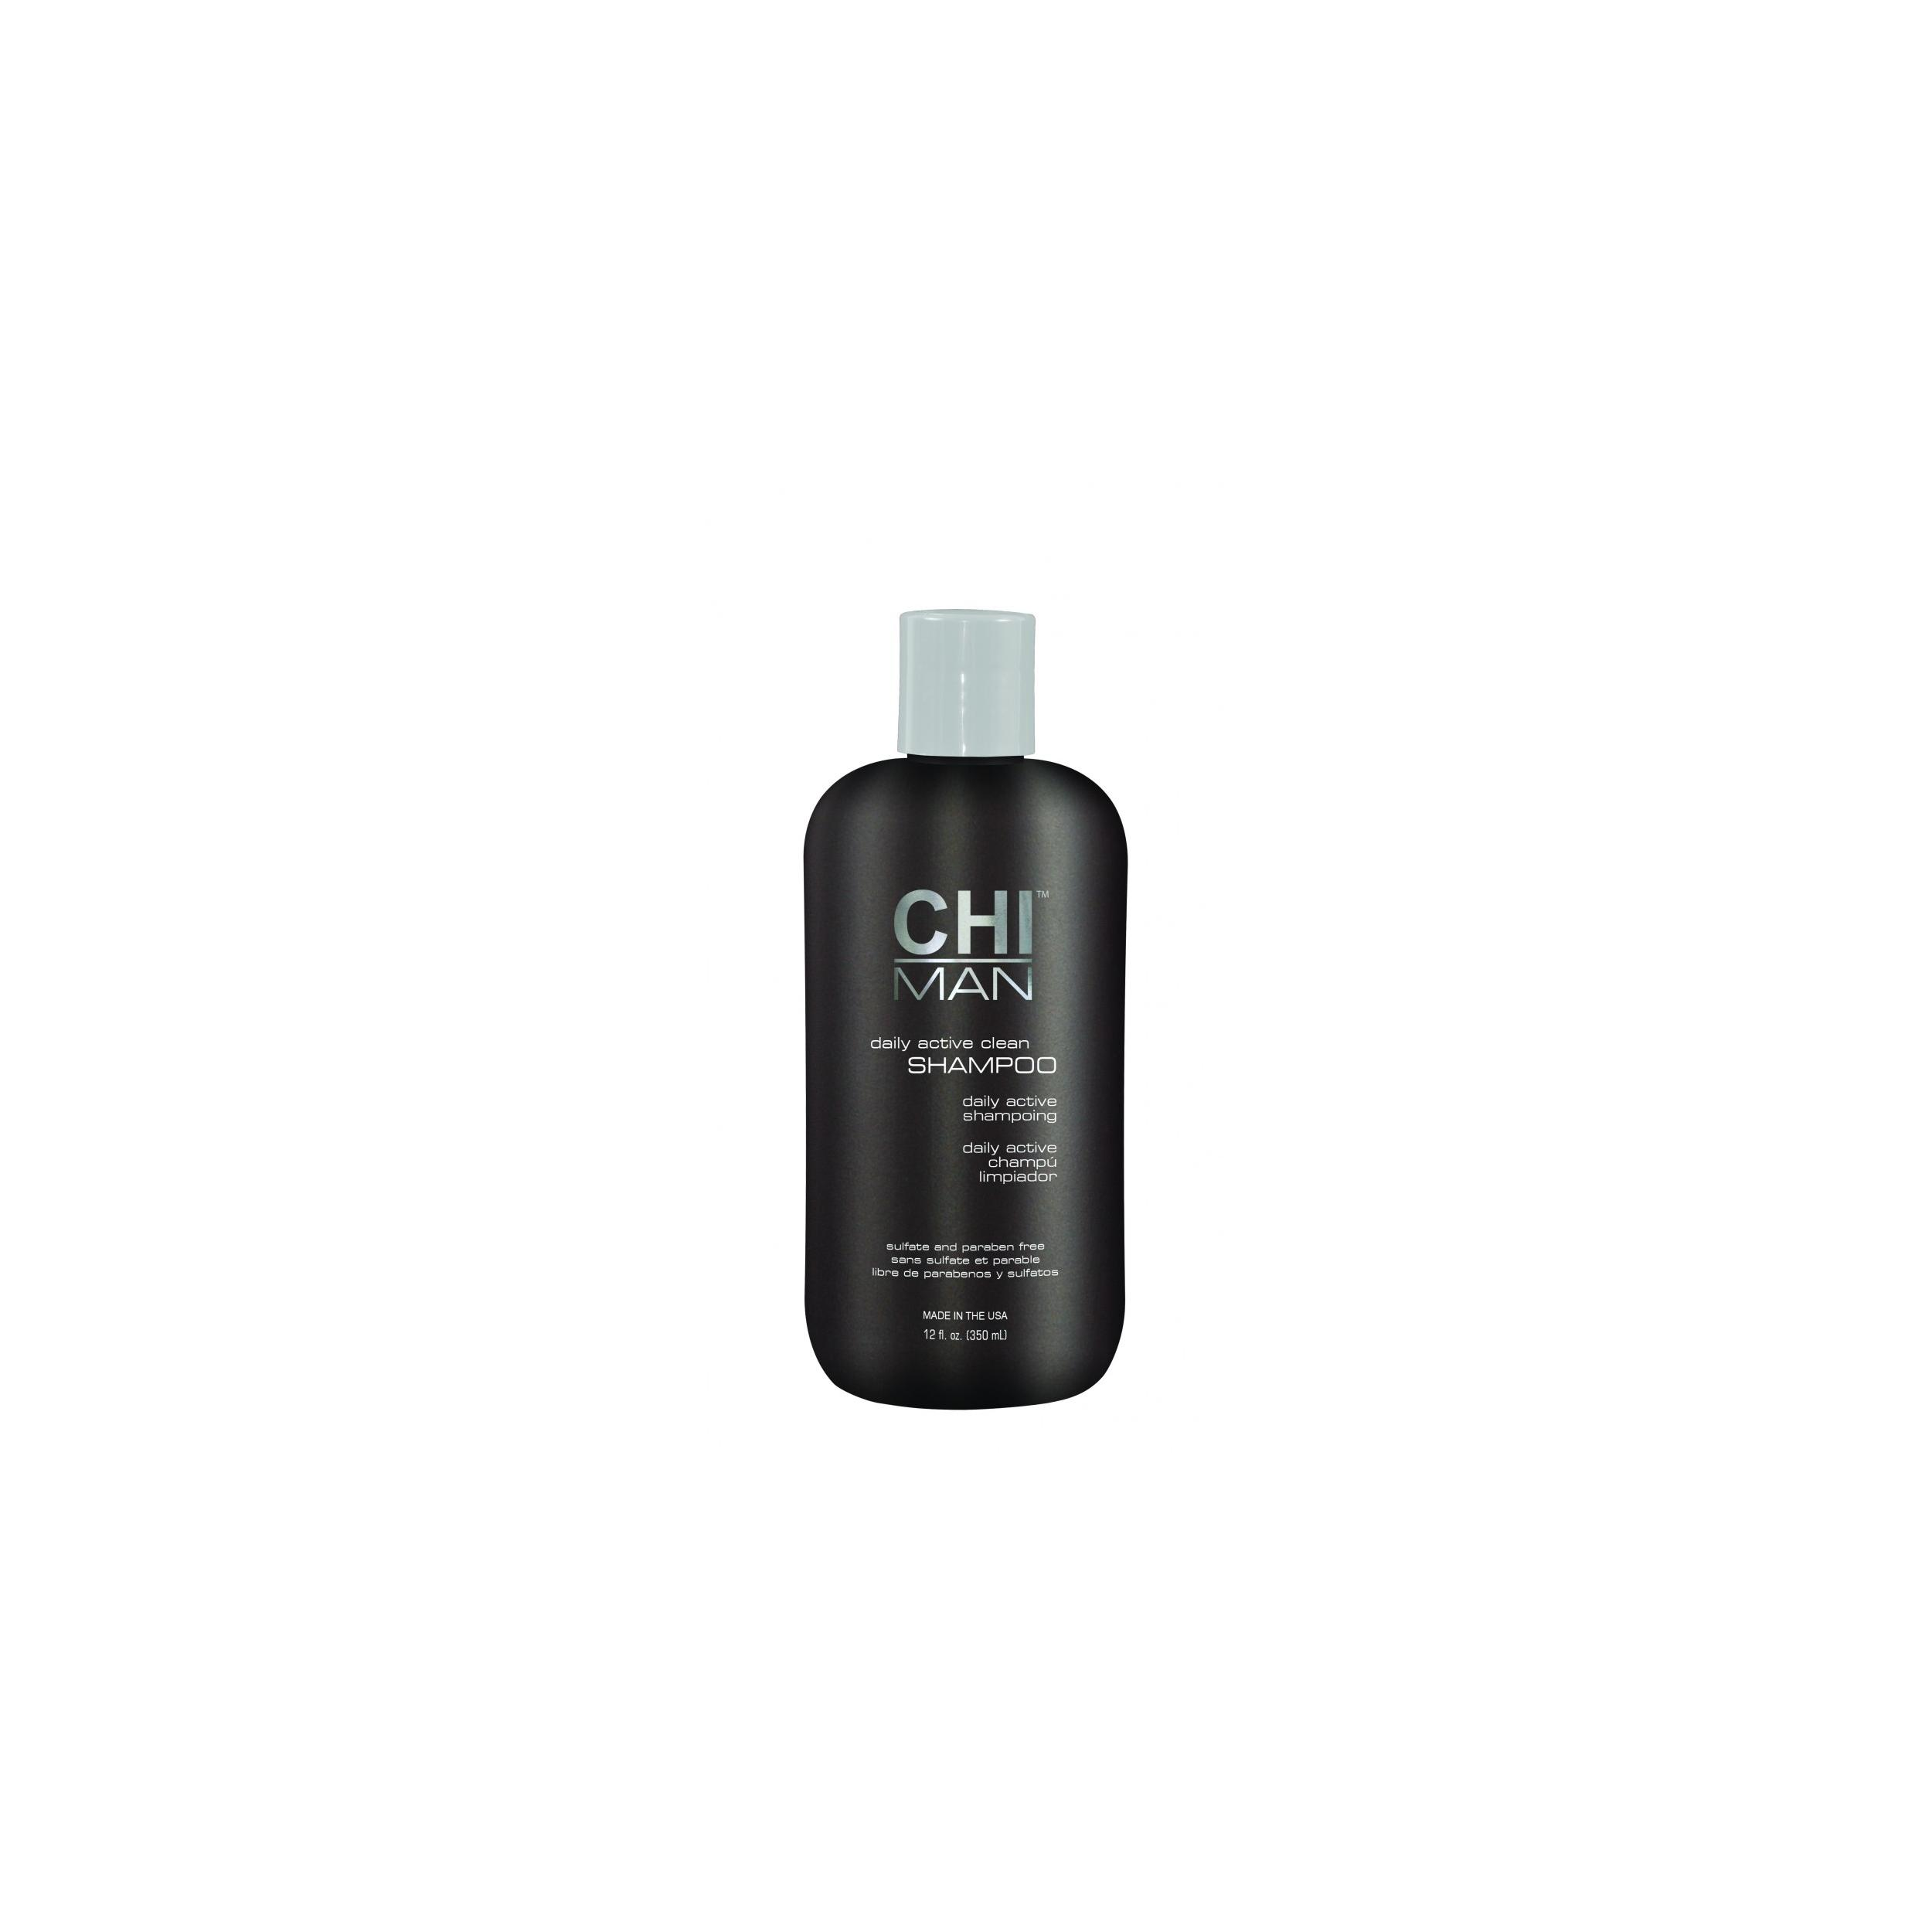 CHI MAN Daily Active Clean Shampoo - Шампунь для Мужчин